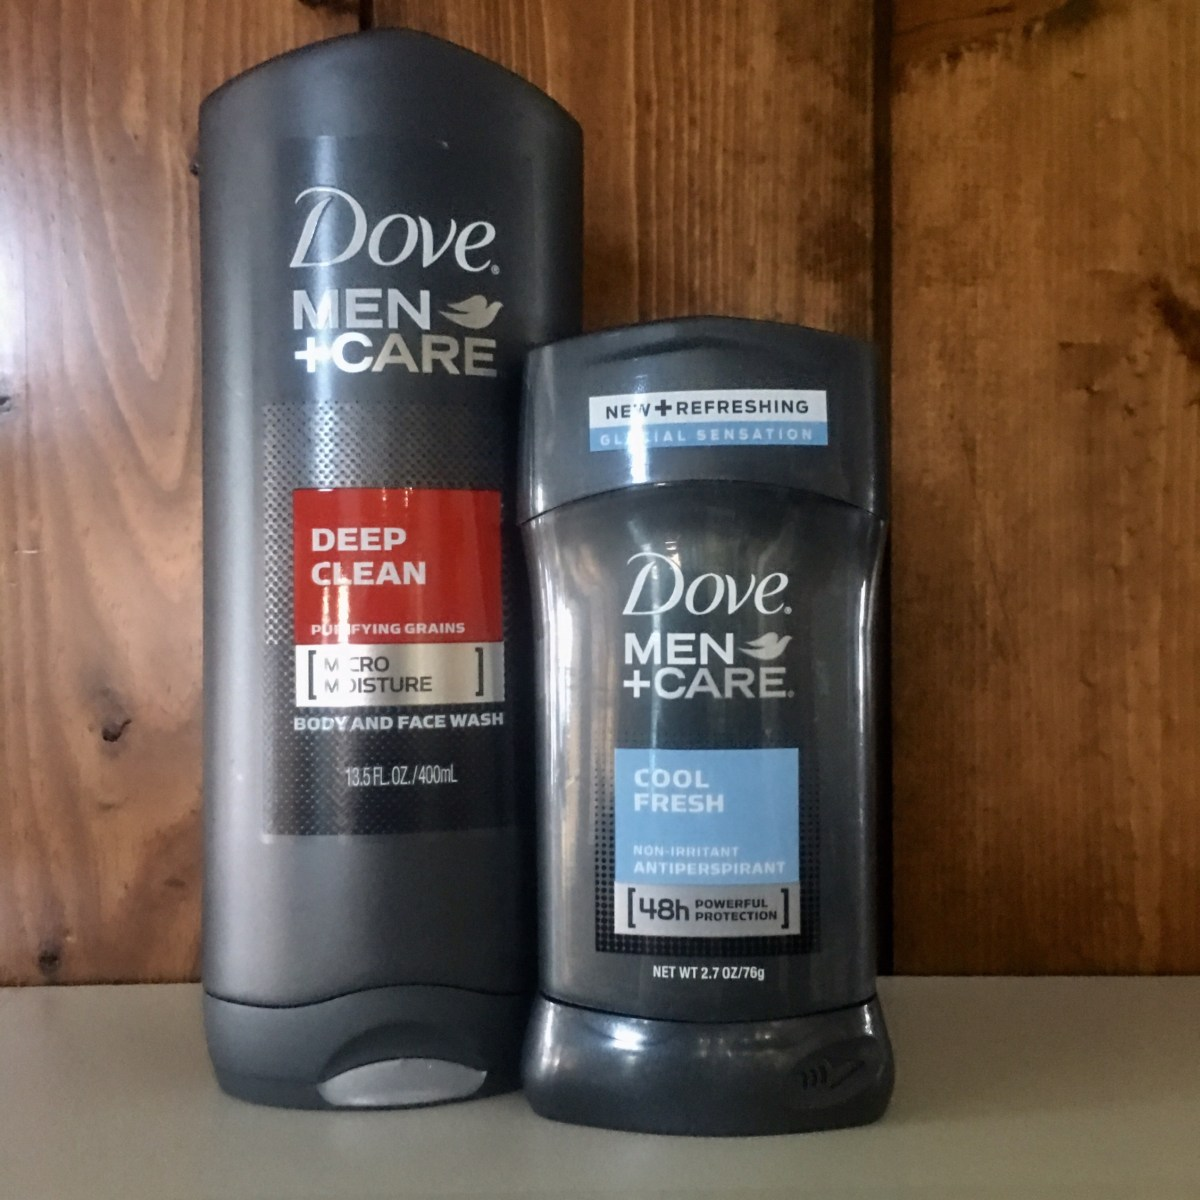 Dove Men Care Cleansing Wash and Deoderant